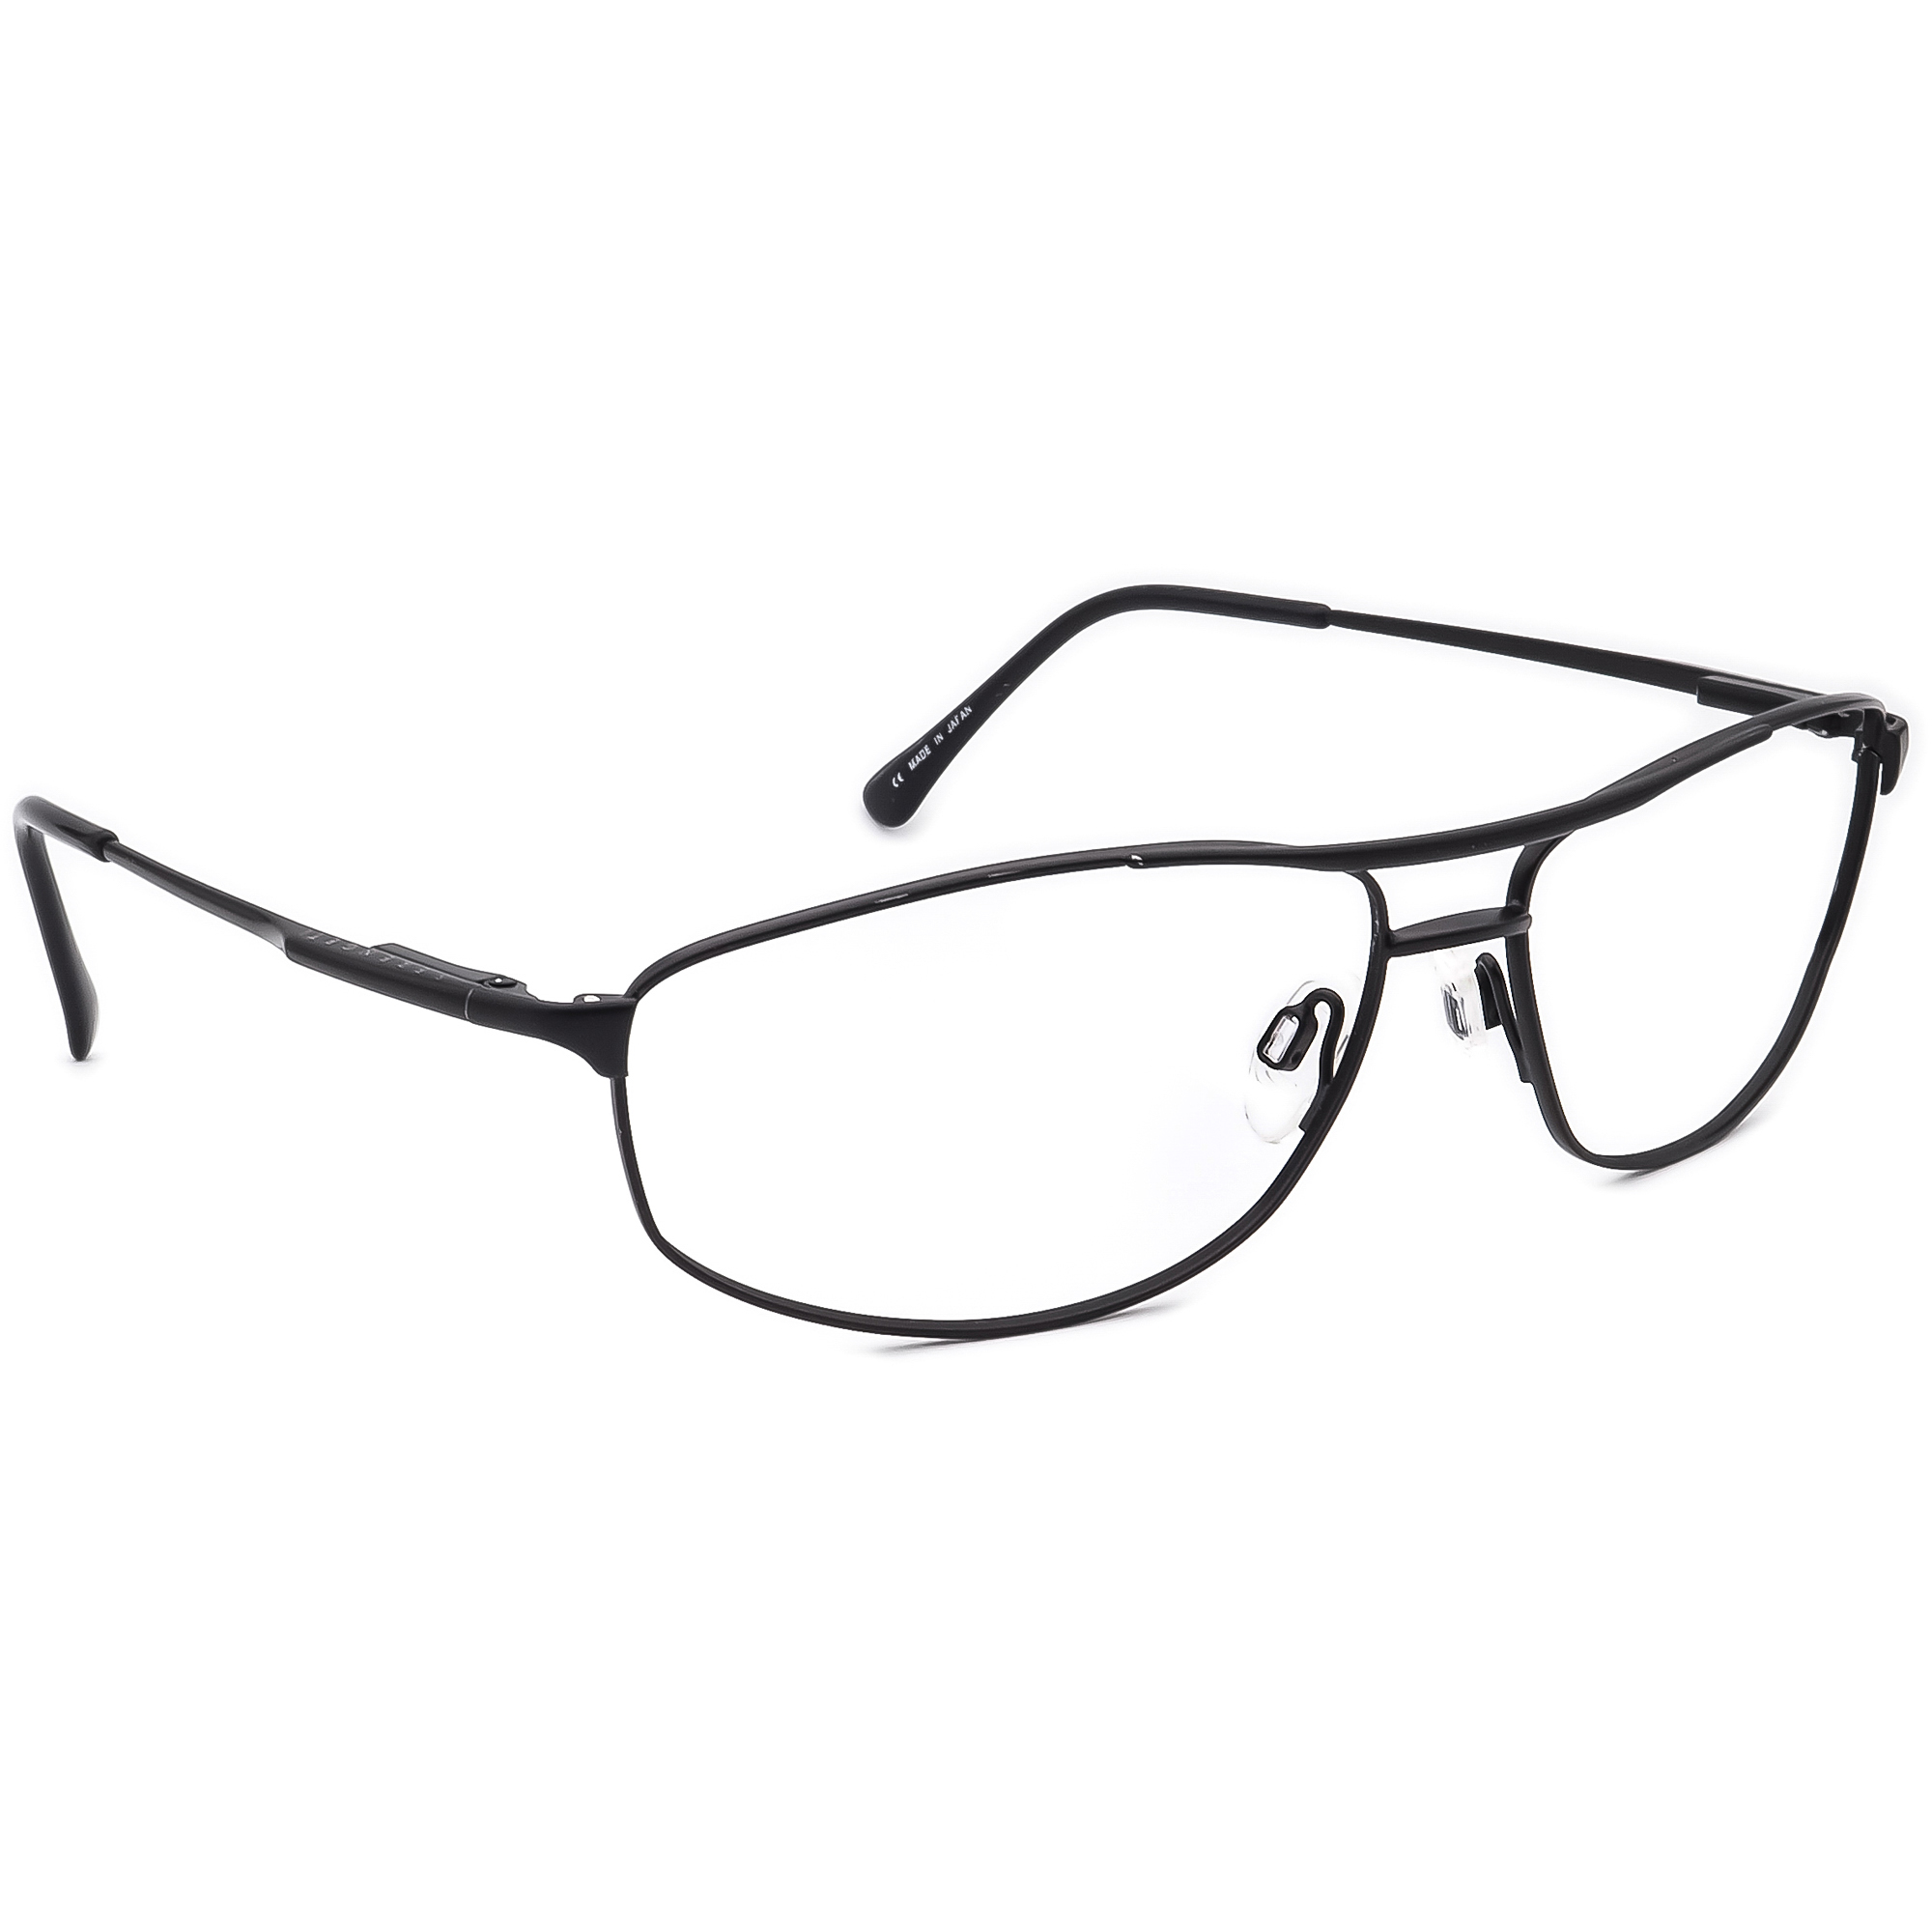 Serengeti 6791 Coupe Sunglasses Frame Only